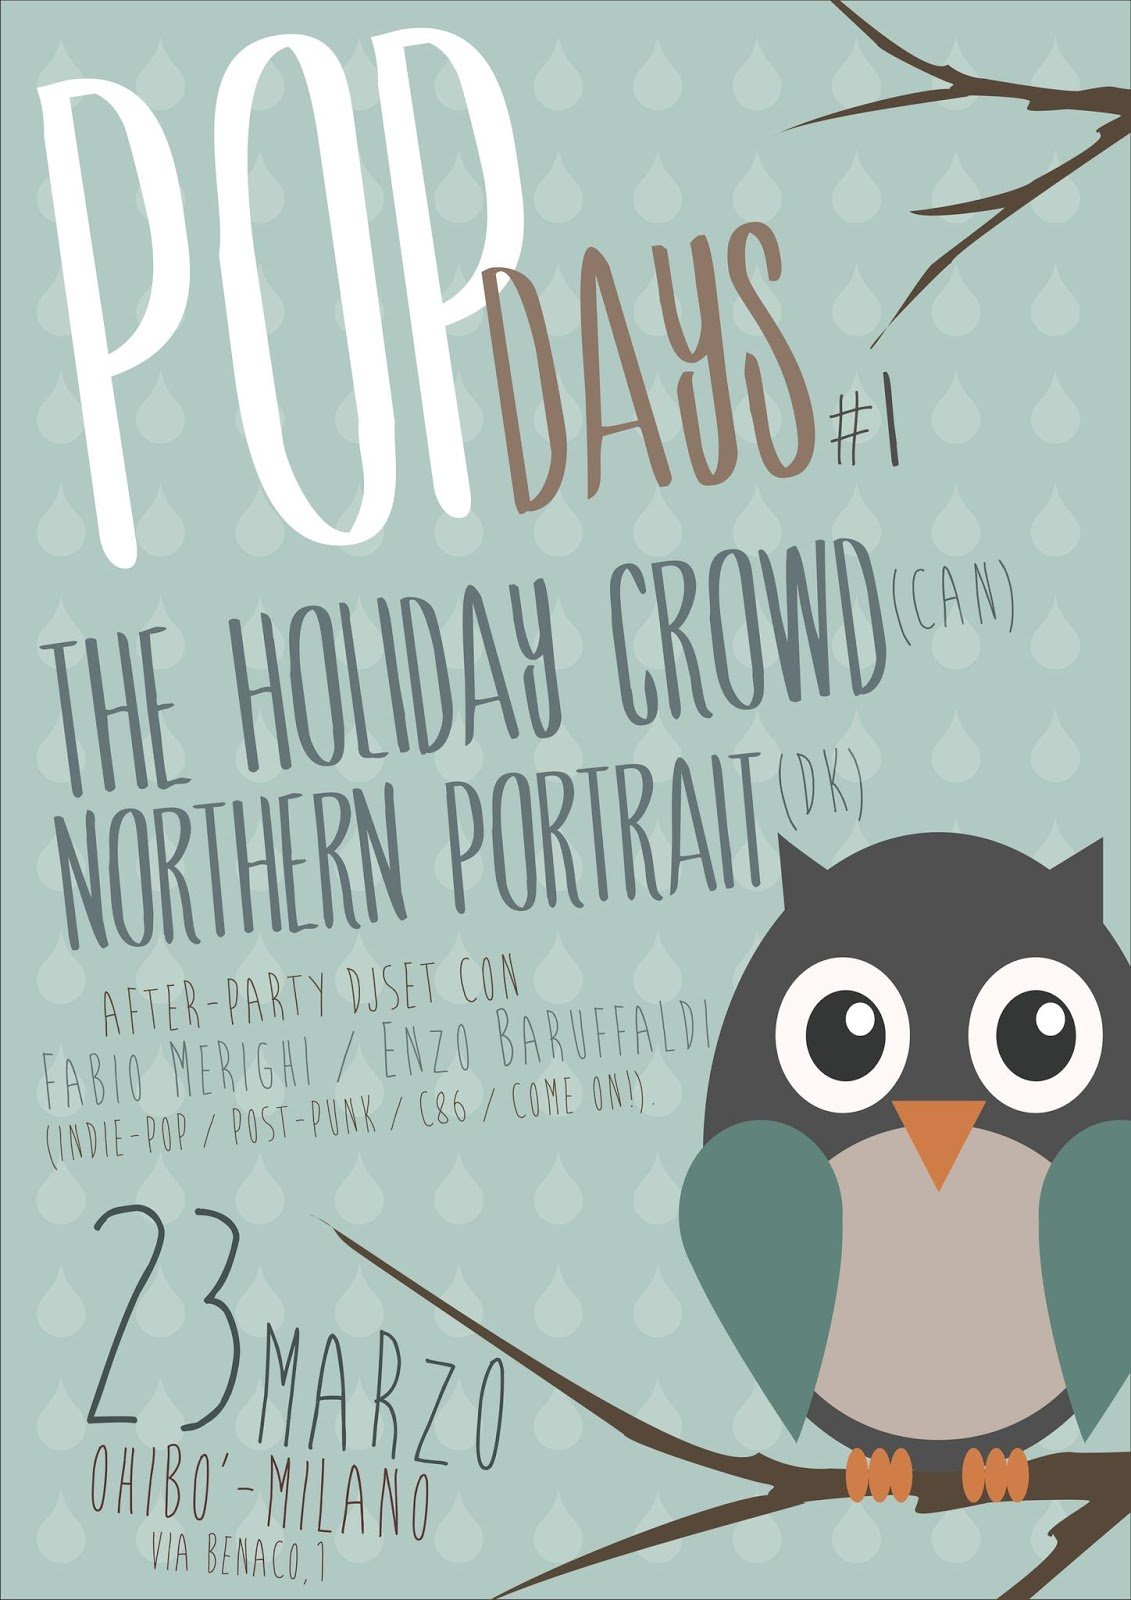 POP DAYS #1: HOLIDAY CROWD (CAN) + NORTHERN PORTRAIT (DK) @ MILANO, OHIBO - 23/03